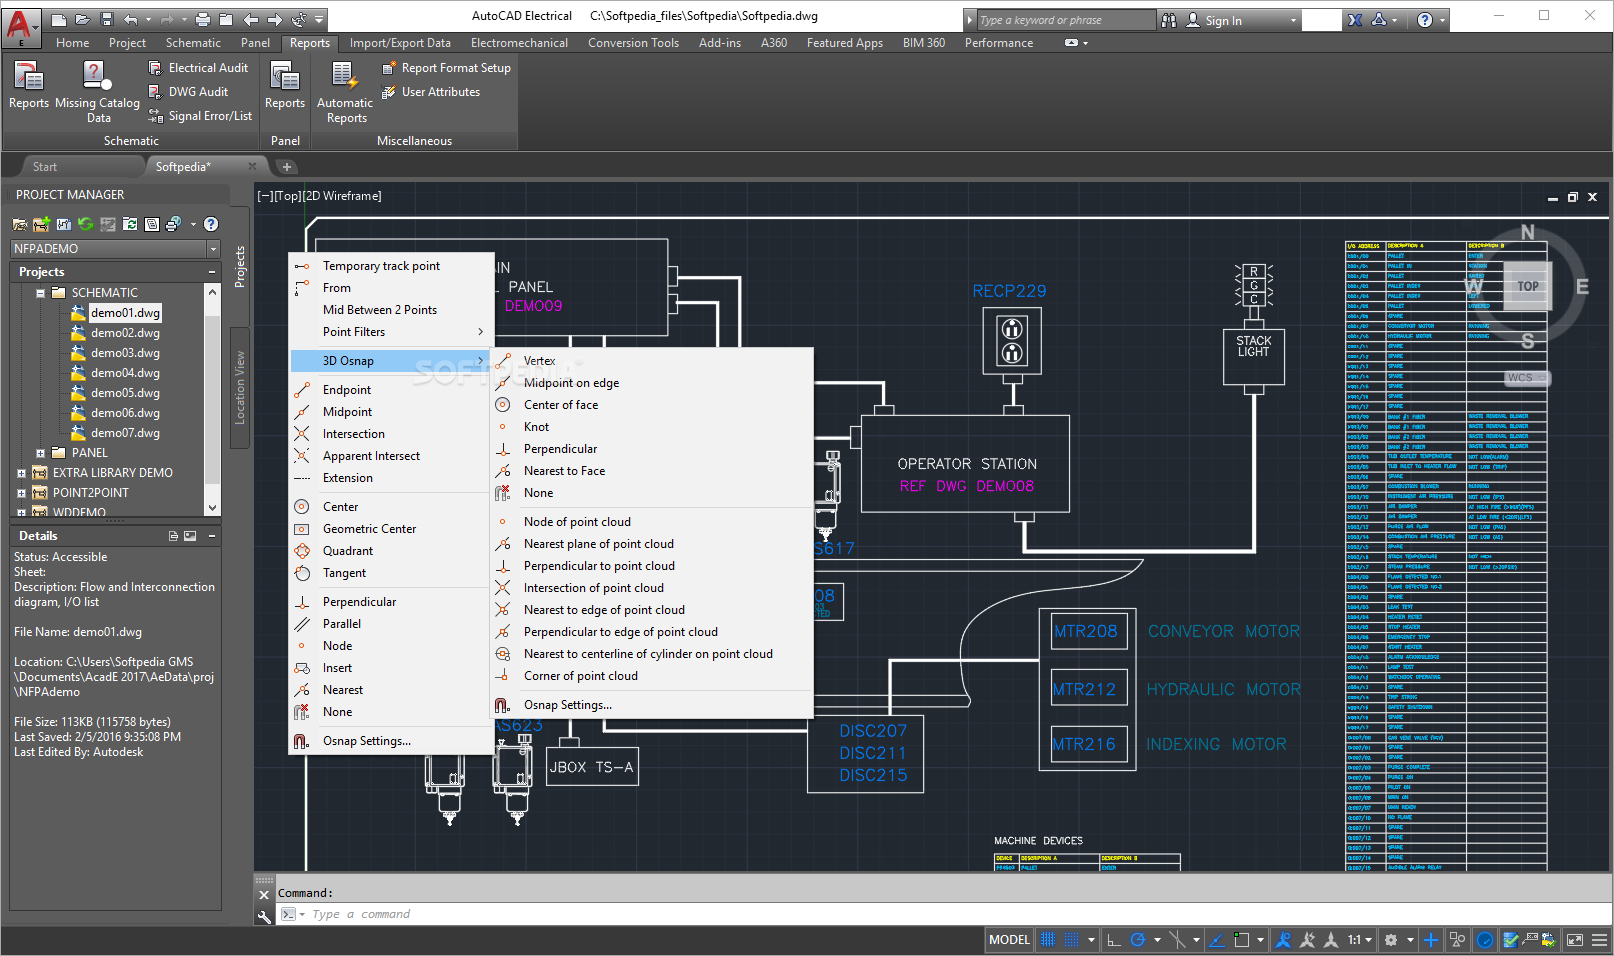 Download Autocad Electrical 2019 201911 Hotfix Circuit Design Suite Screenshot 34 7